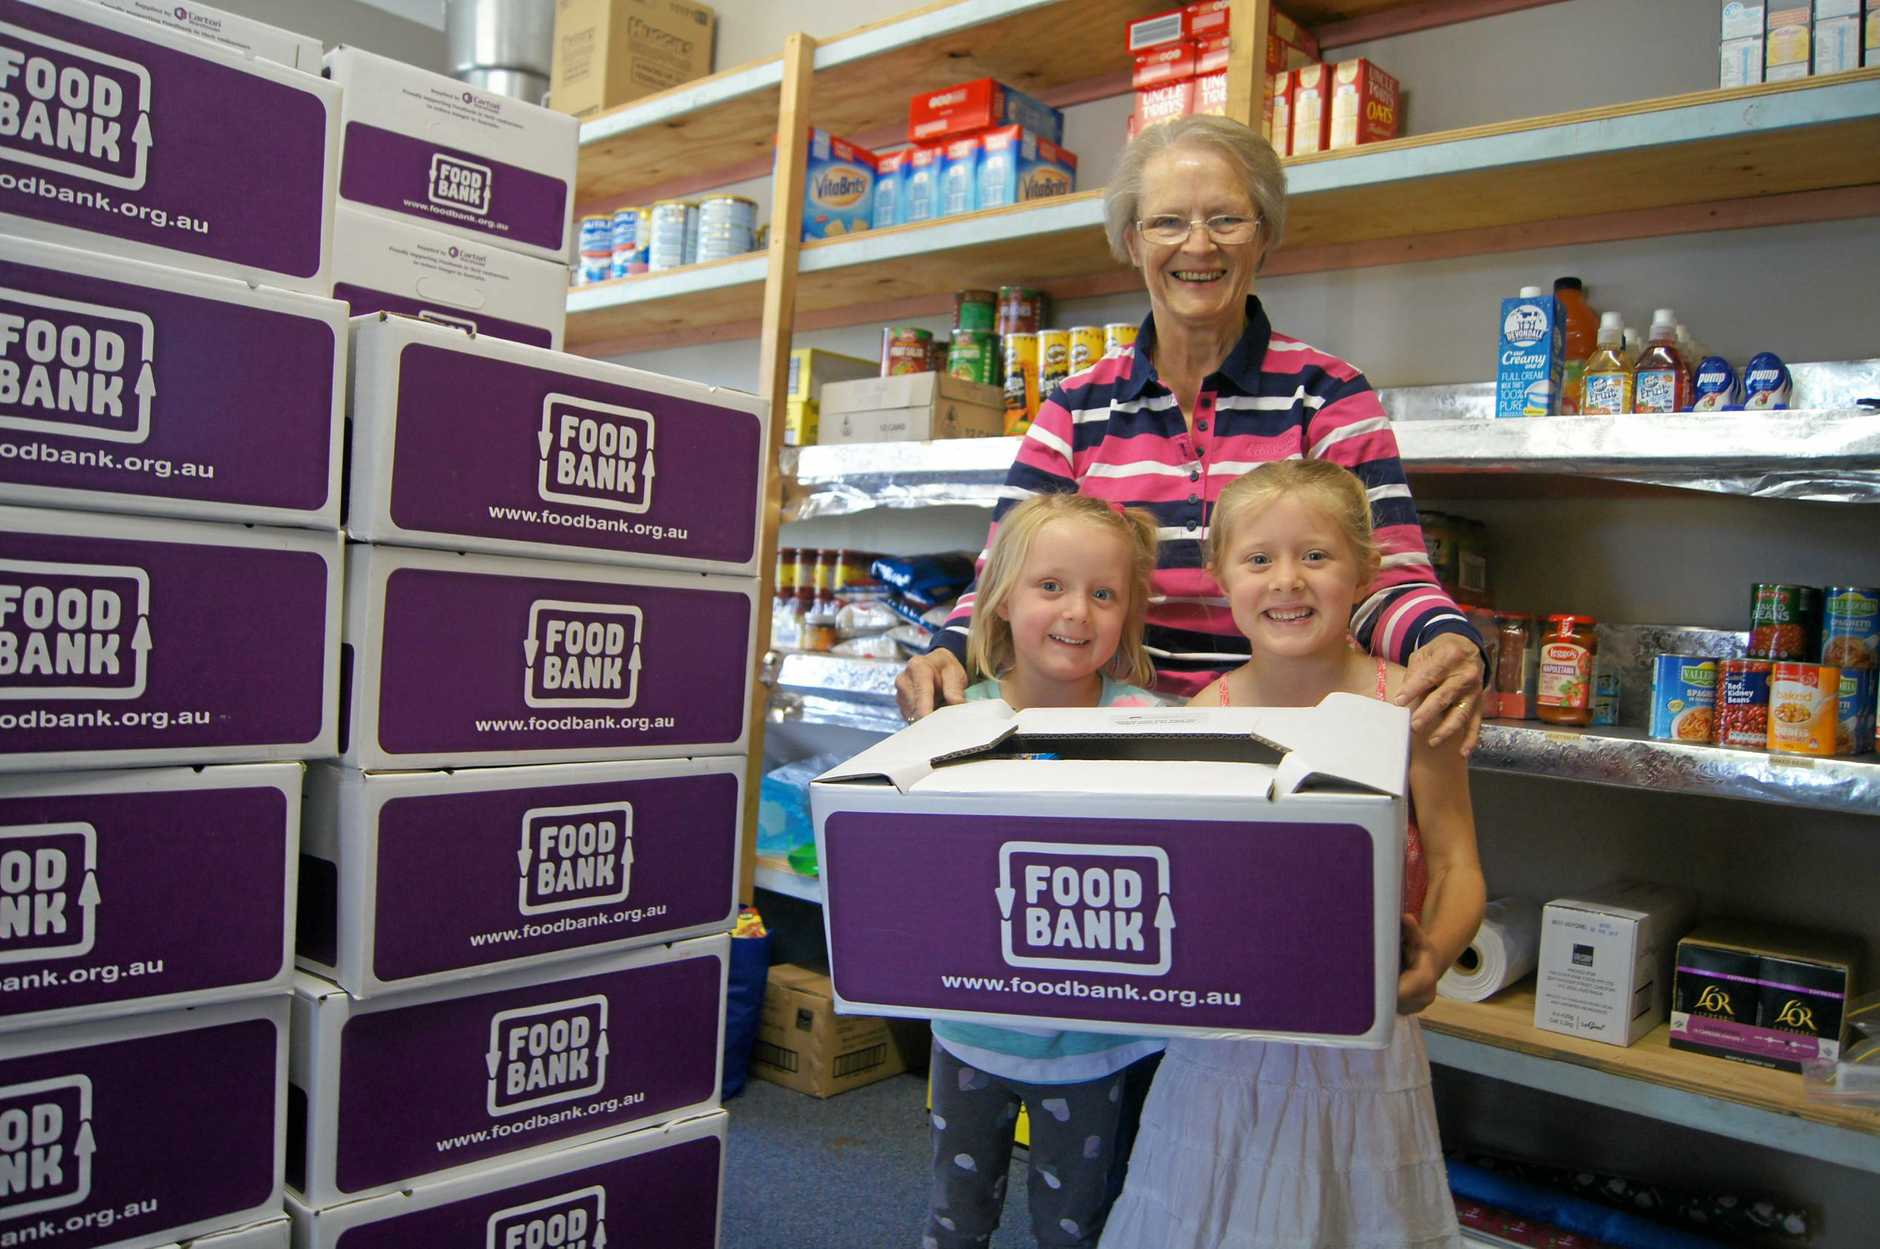 HELPING HAND: Sisters Makenzie and Allie help distribute Foodbank hampers that could help one of their friends.